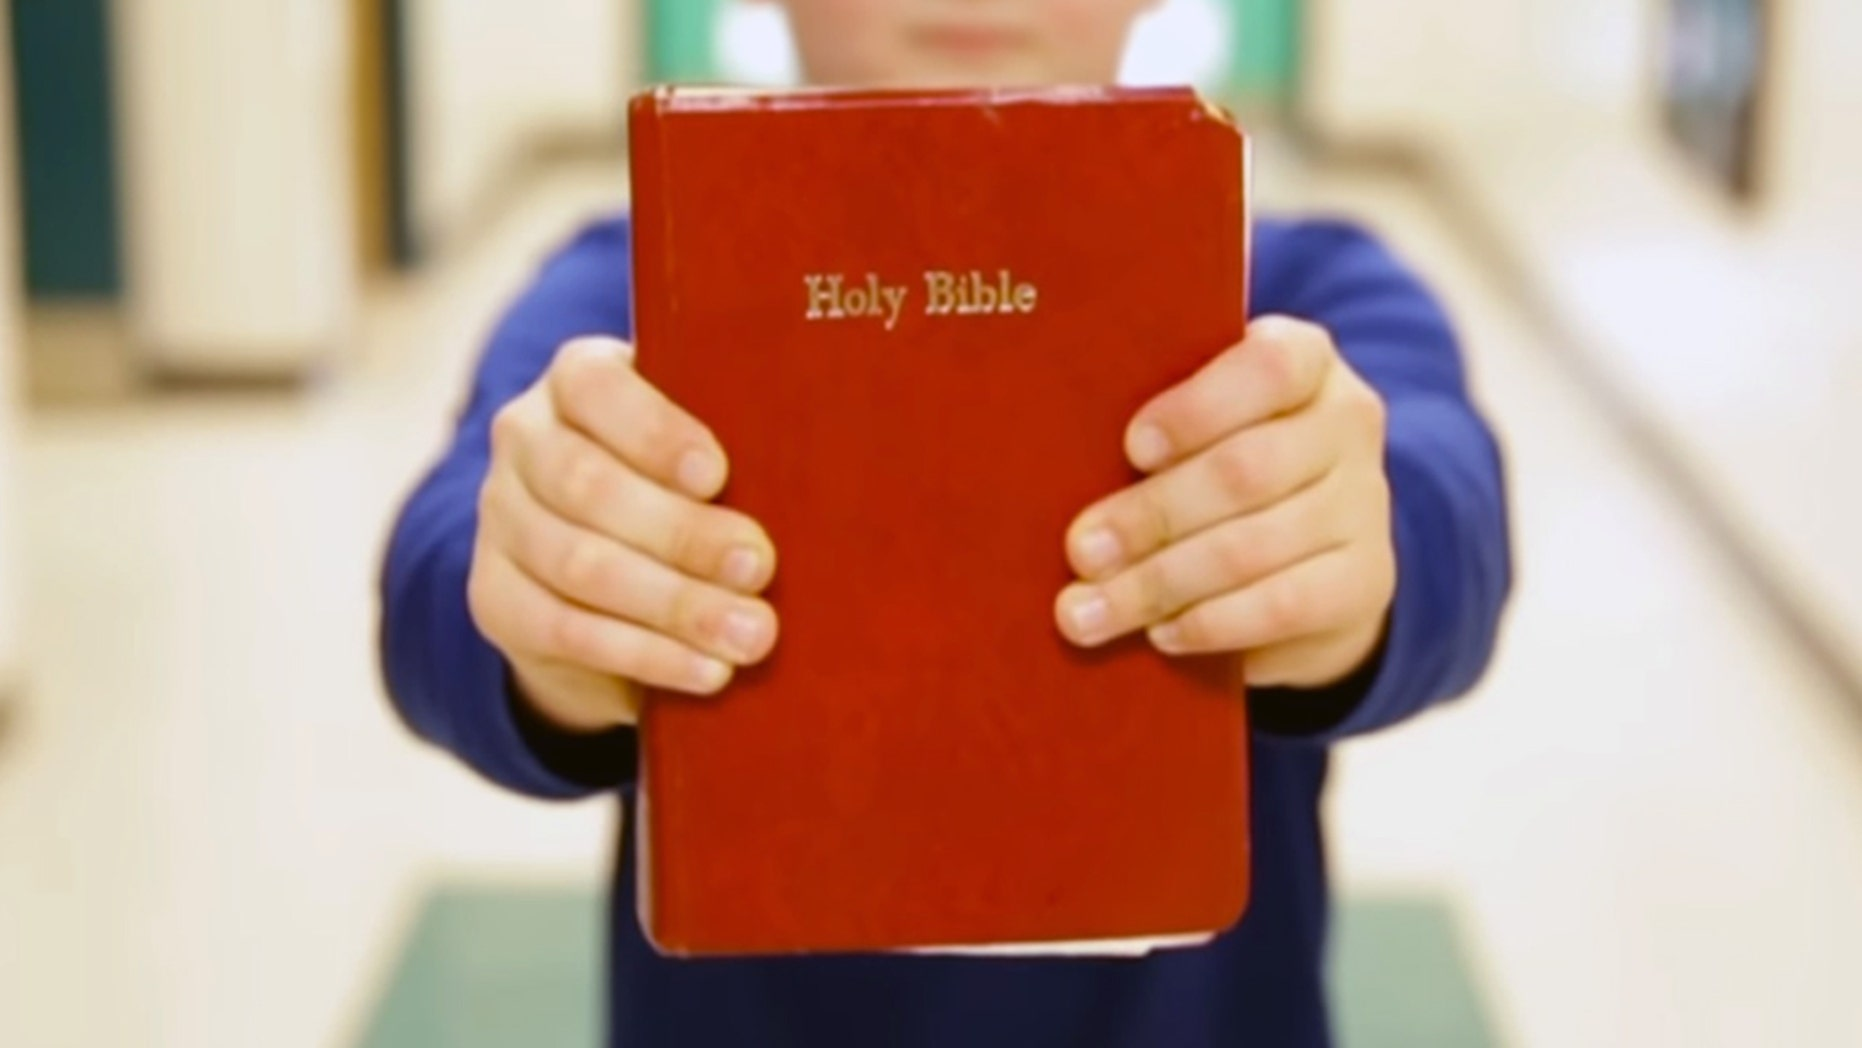 Bring Your Bible to School Day is a day for students to showcase their faith to their classmates, but parents in a California school district are suing after they feel their kids were unconstitutionally prohibited from handing out fliers promoting the event.